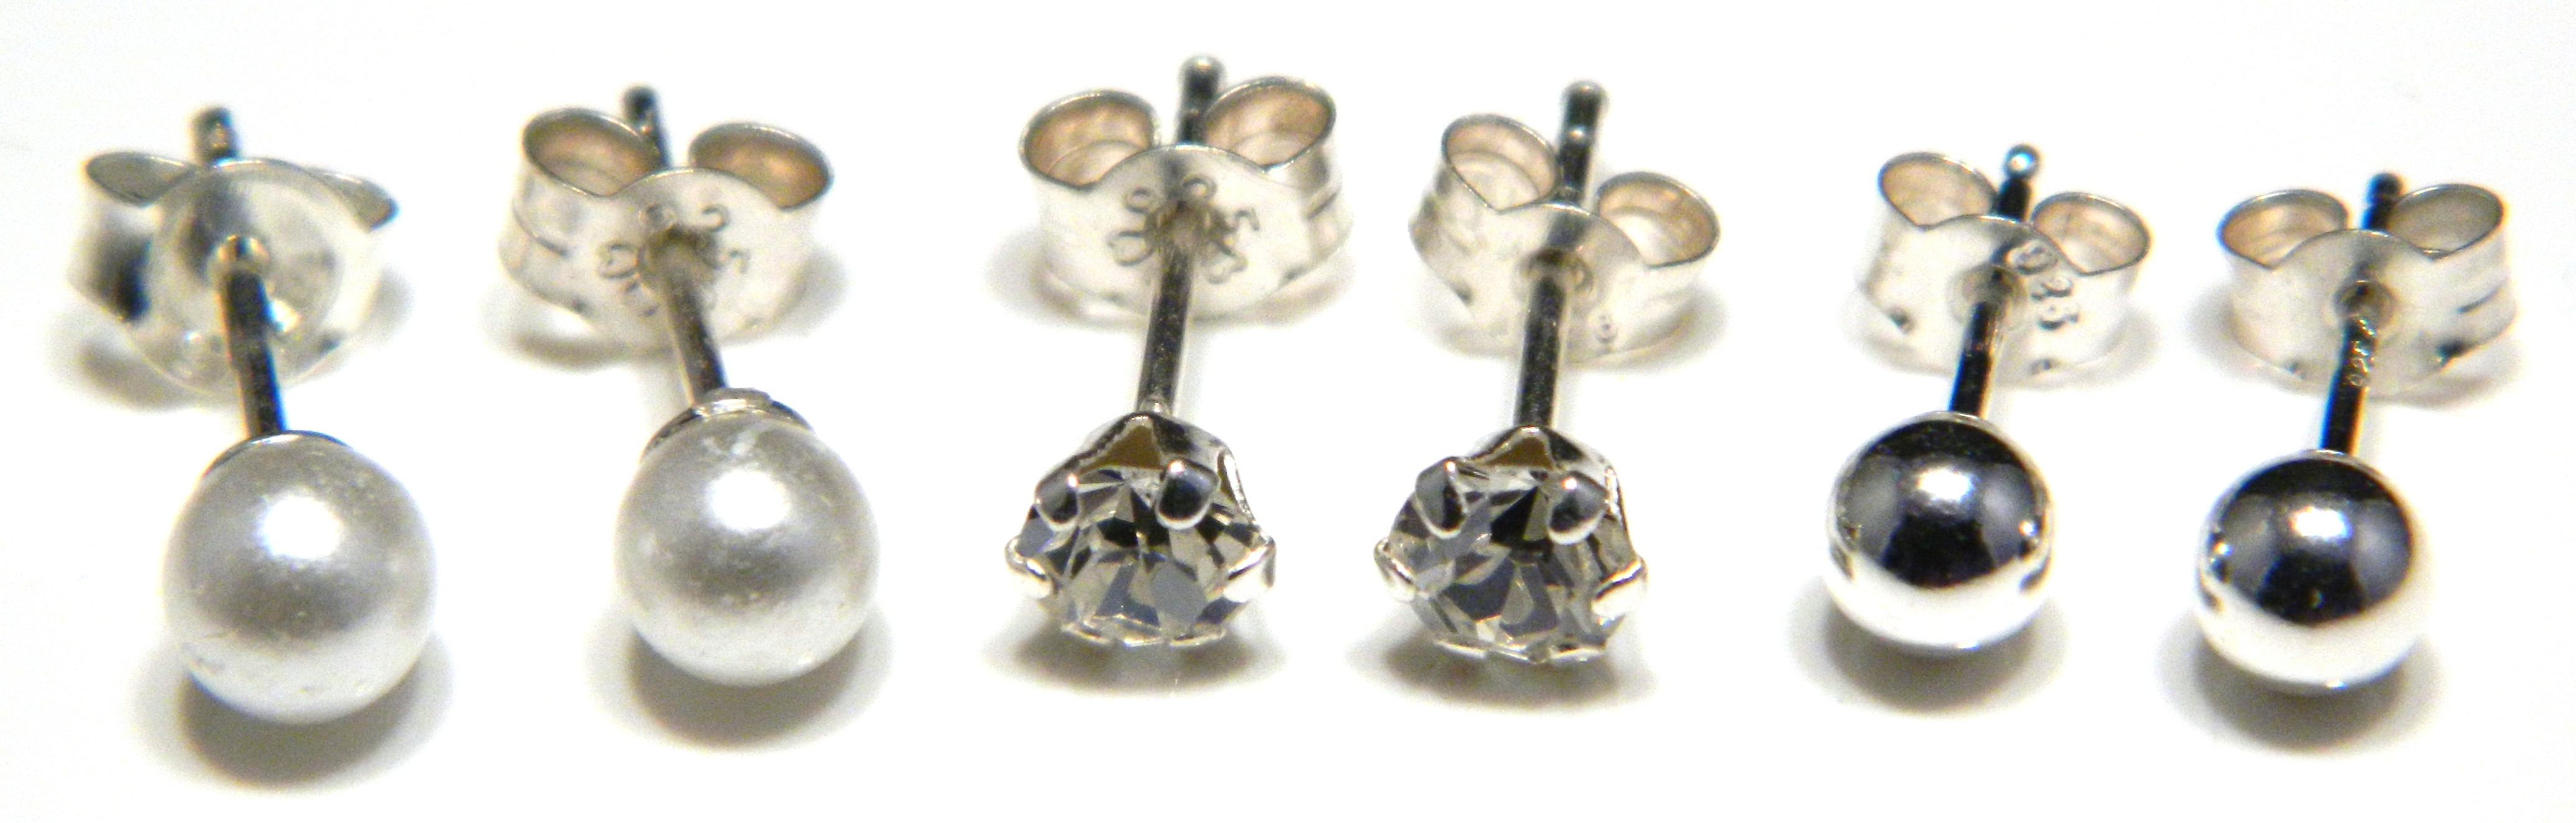 palladium sue perfect and modern for earrings mm diamond contemporary by maker everyday designer products stud handmade